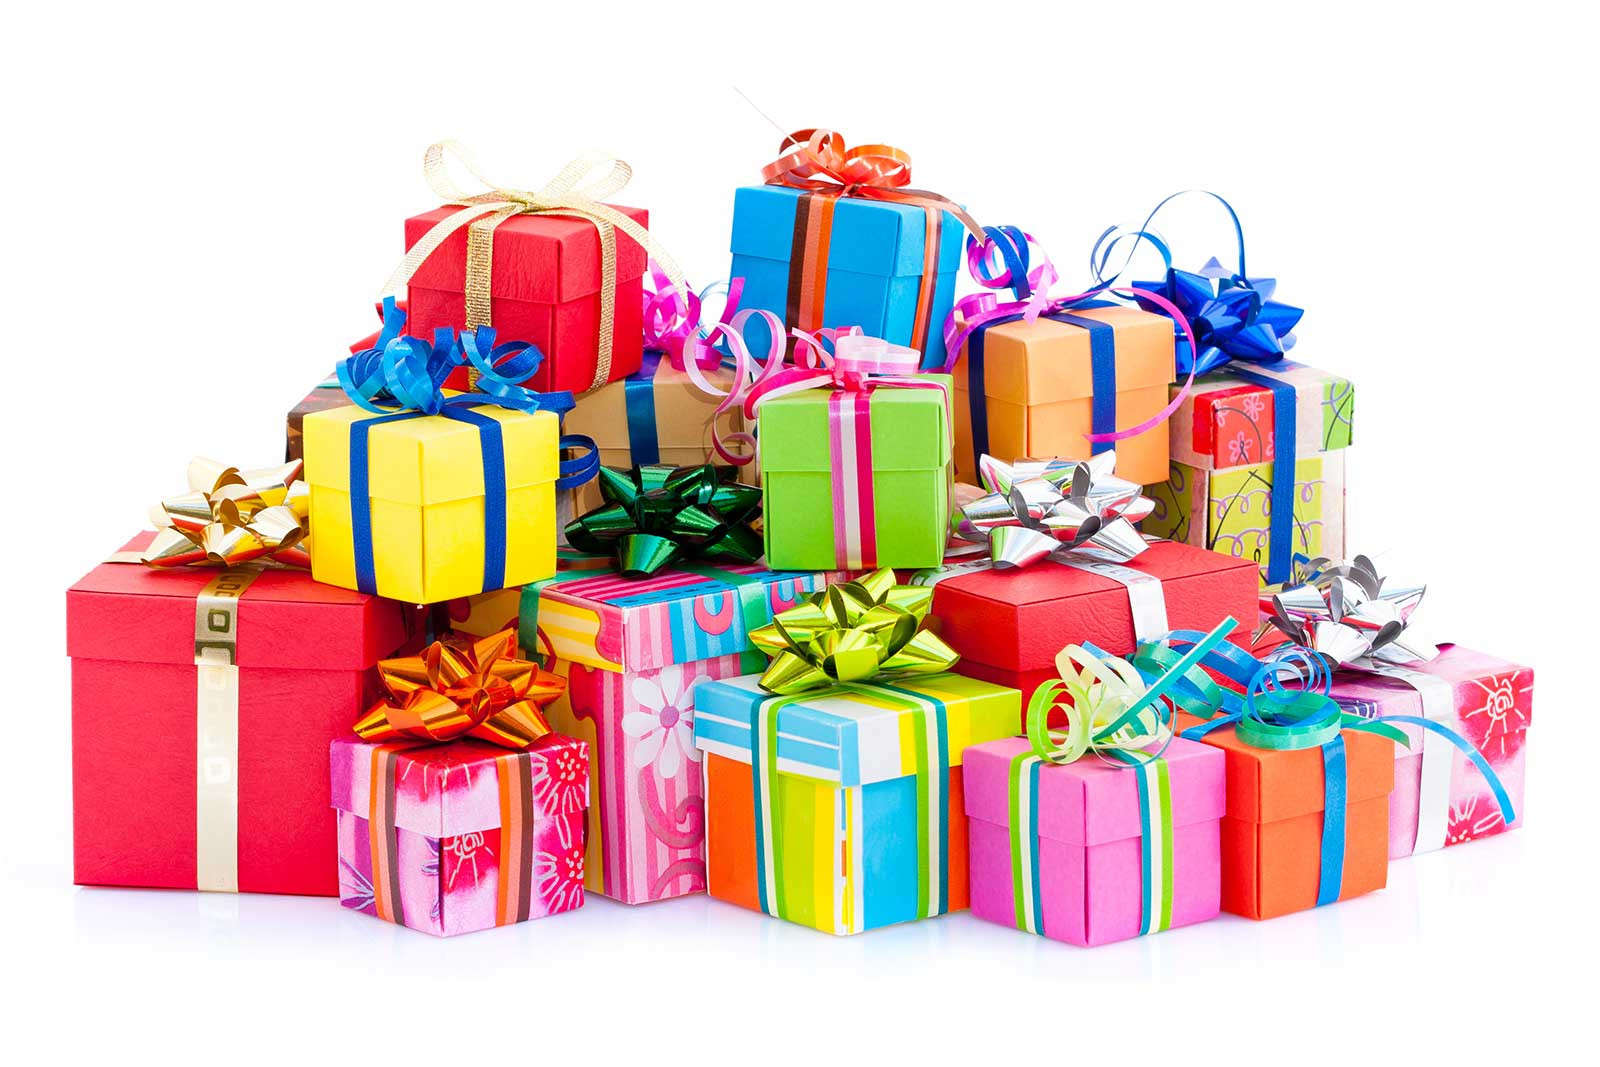 Best ideas about Birthday Gifts For Kids . Save or Pin Birthday Gifts Now.